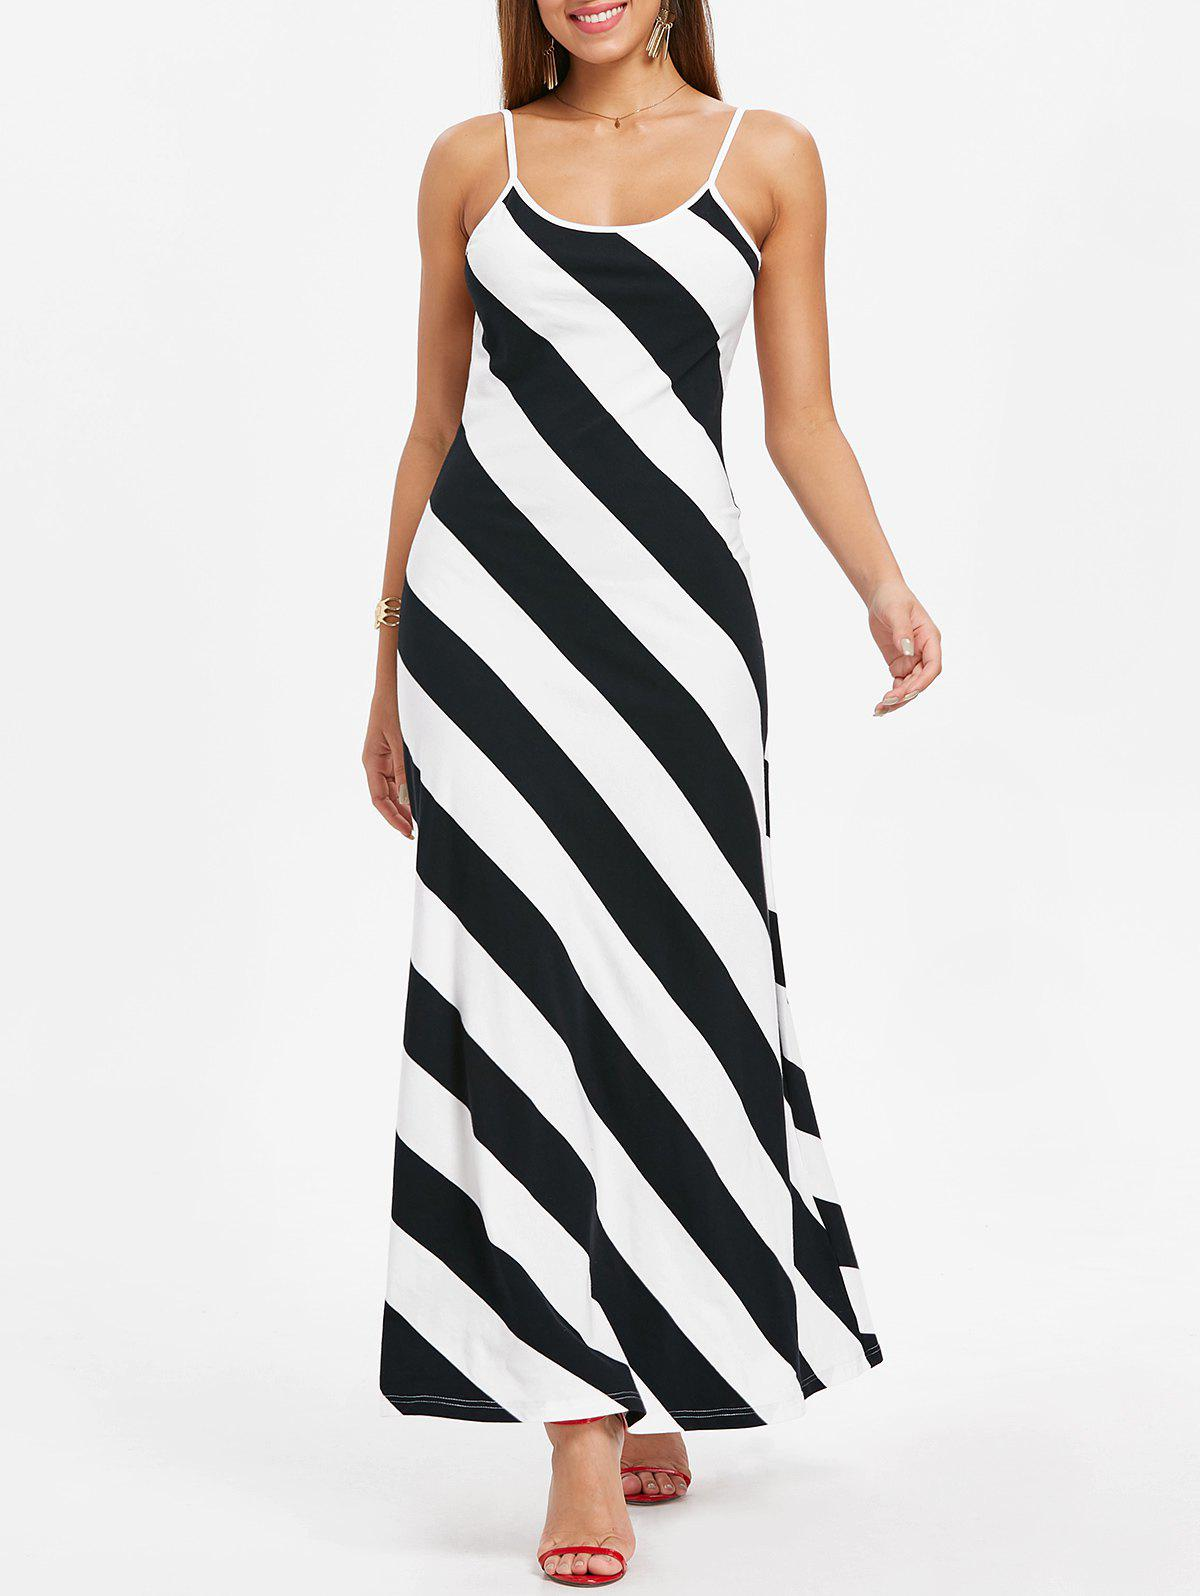 Unique Open Back Striped Dress